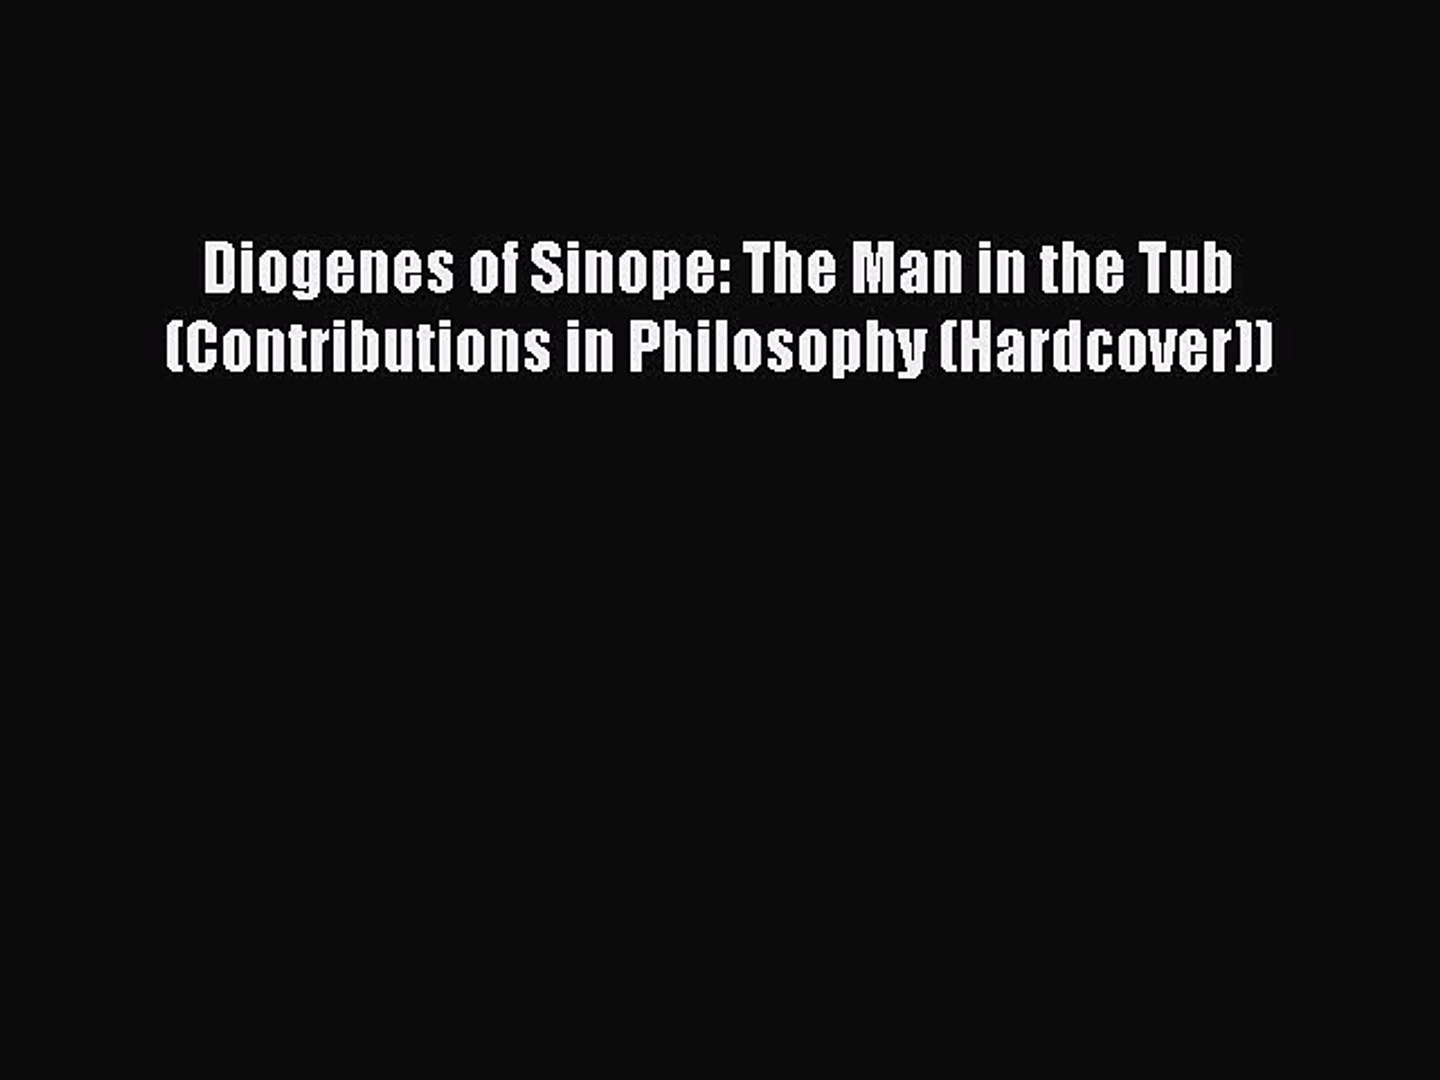 Download Diogenes Of Sinope The Man In The Tub Contributions In Philosophy Hardcover Ebook